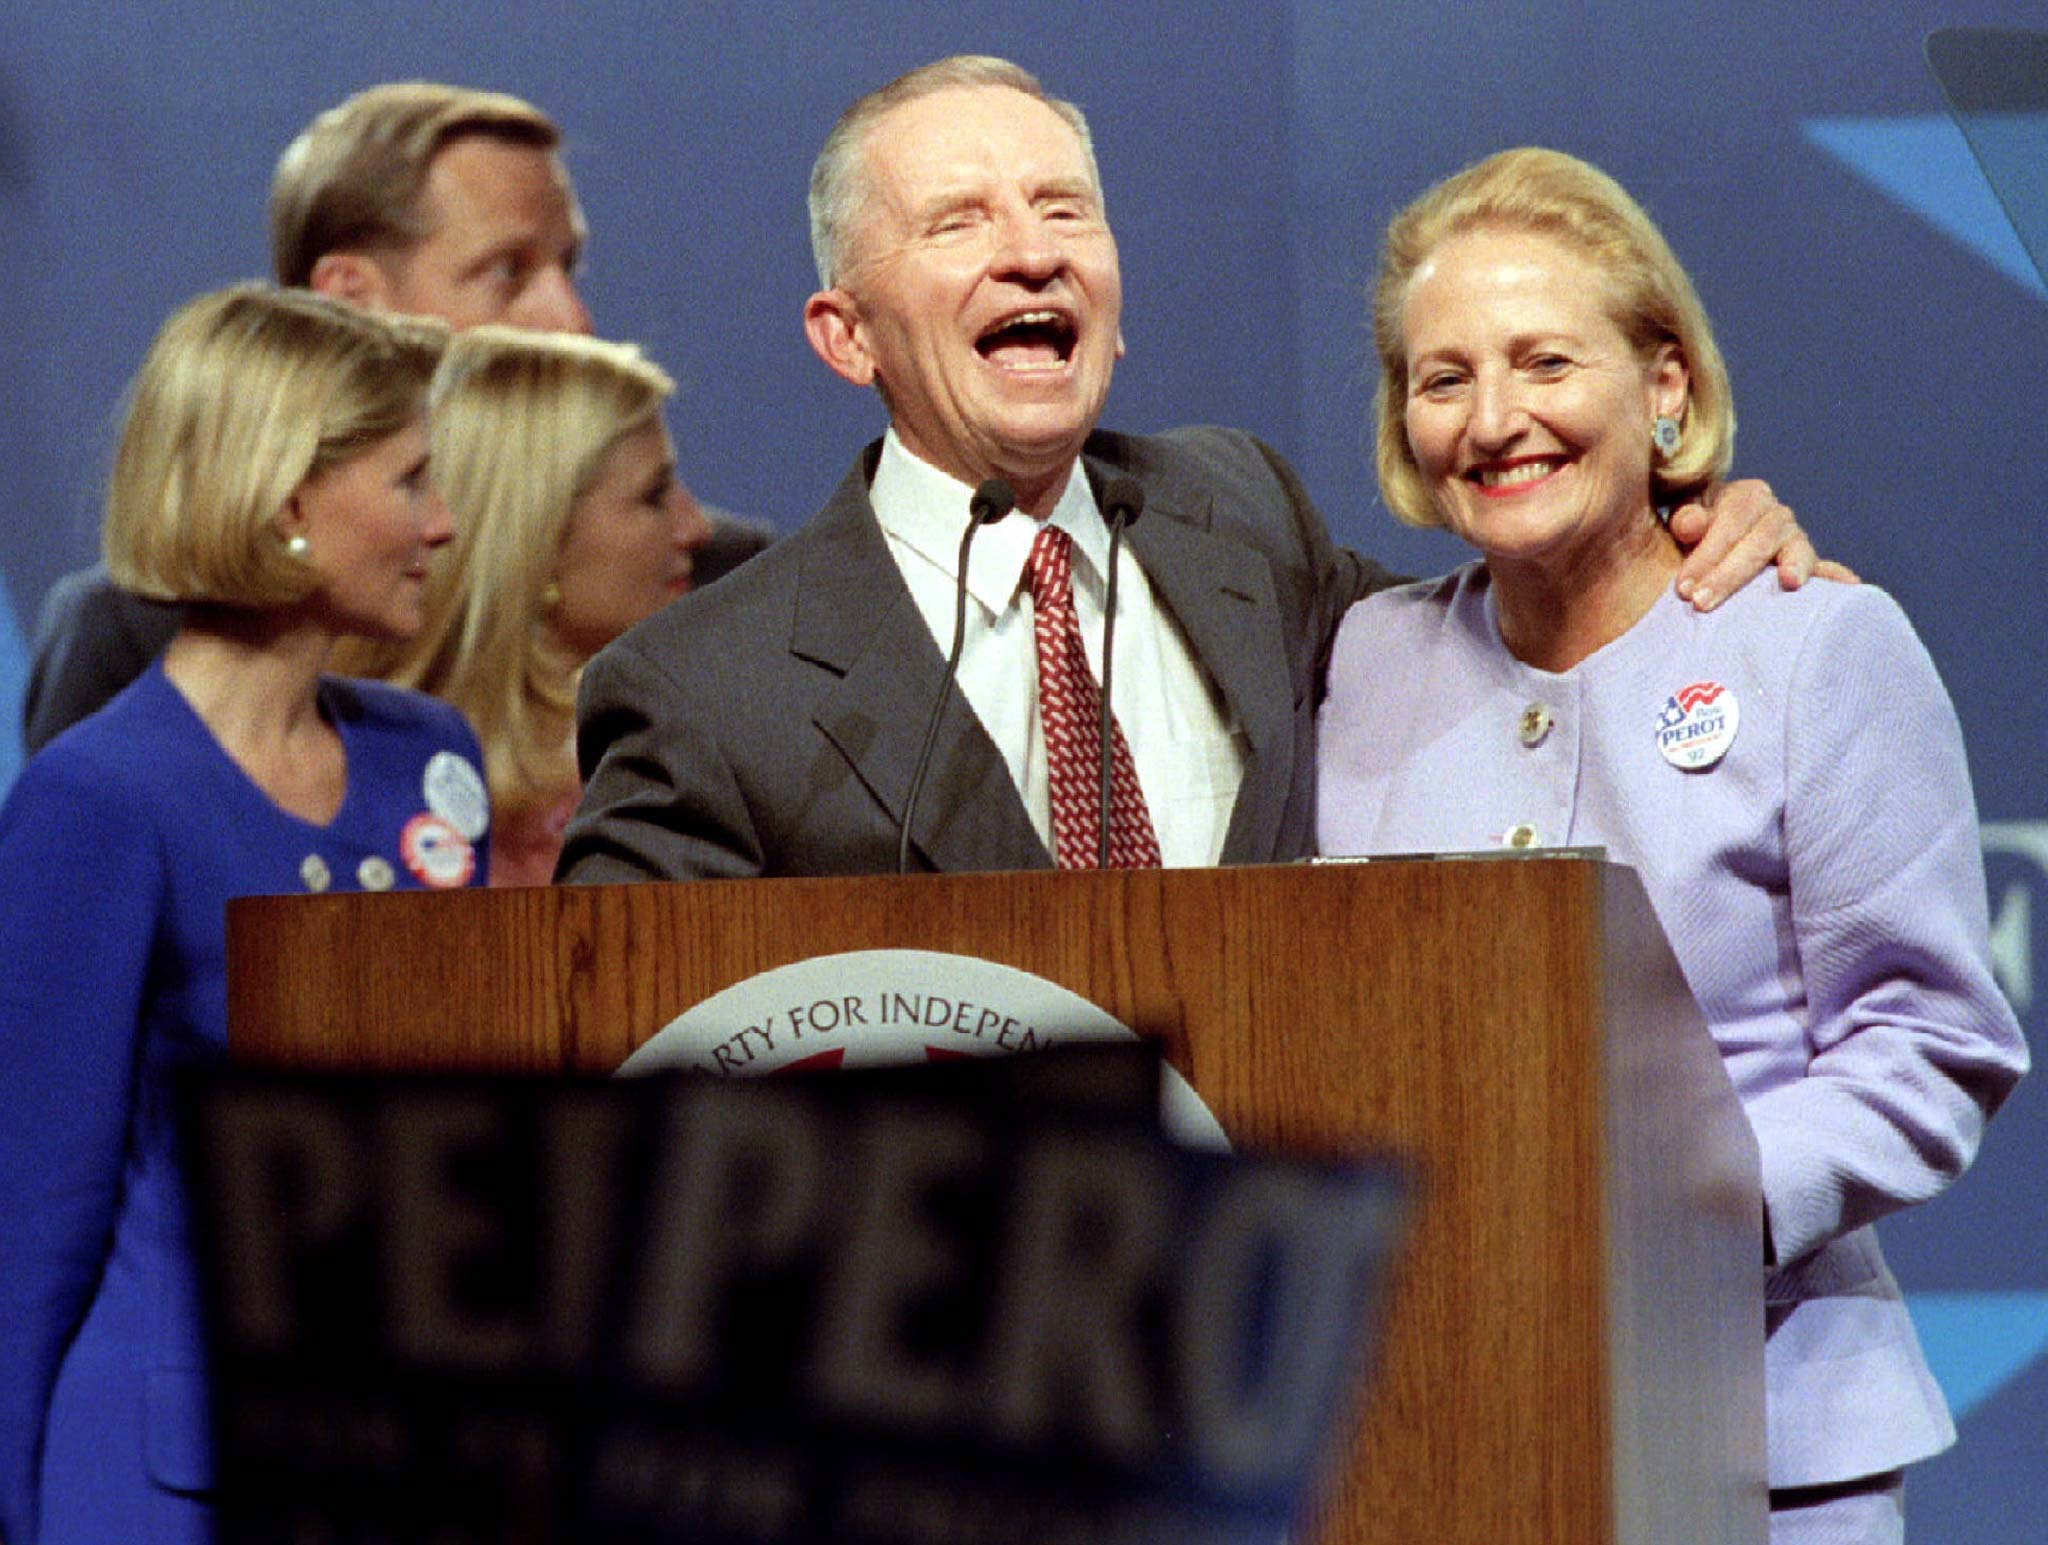 Reform Party presidential nominee Ross Perot is joined on stage by wife Margot (R) and other family members after speaking at the party's national convention in Valley Forge, Pennsylvania August 18. Perot, launching his second presidential campaign said he would not bankroll his campaign from his personal fortune as in 1992, but would rely on federal funding and private contributions. - RTXGKIC